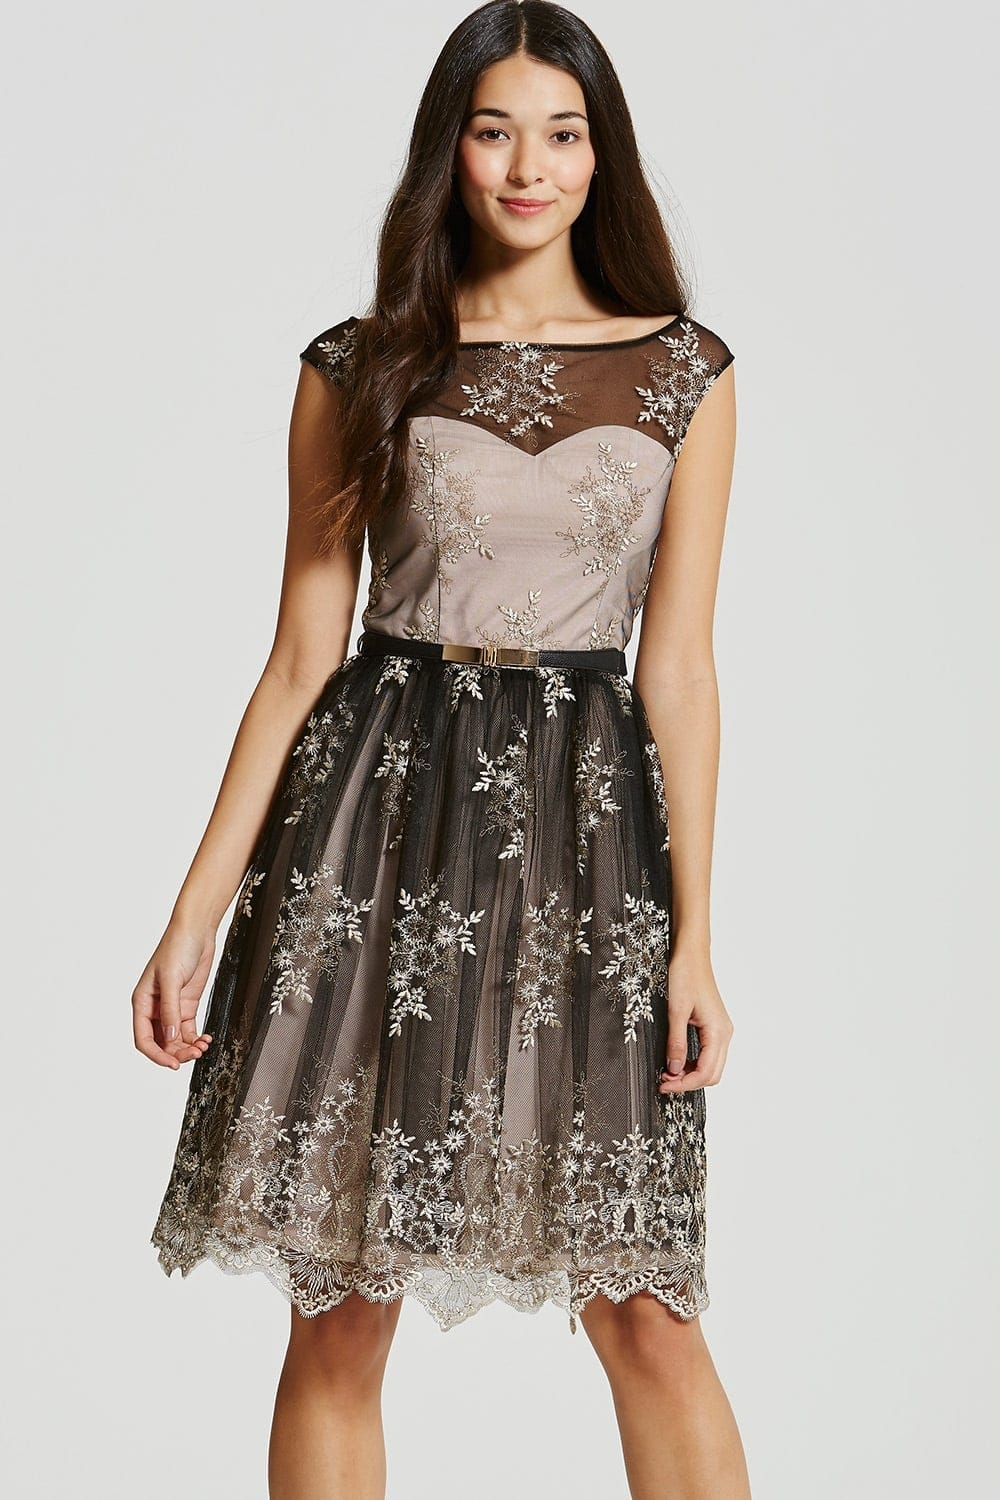 Black and Nude Embroidery Prom Dress - from Little Mistress UK